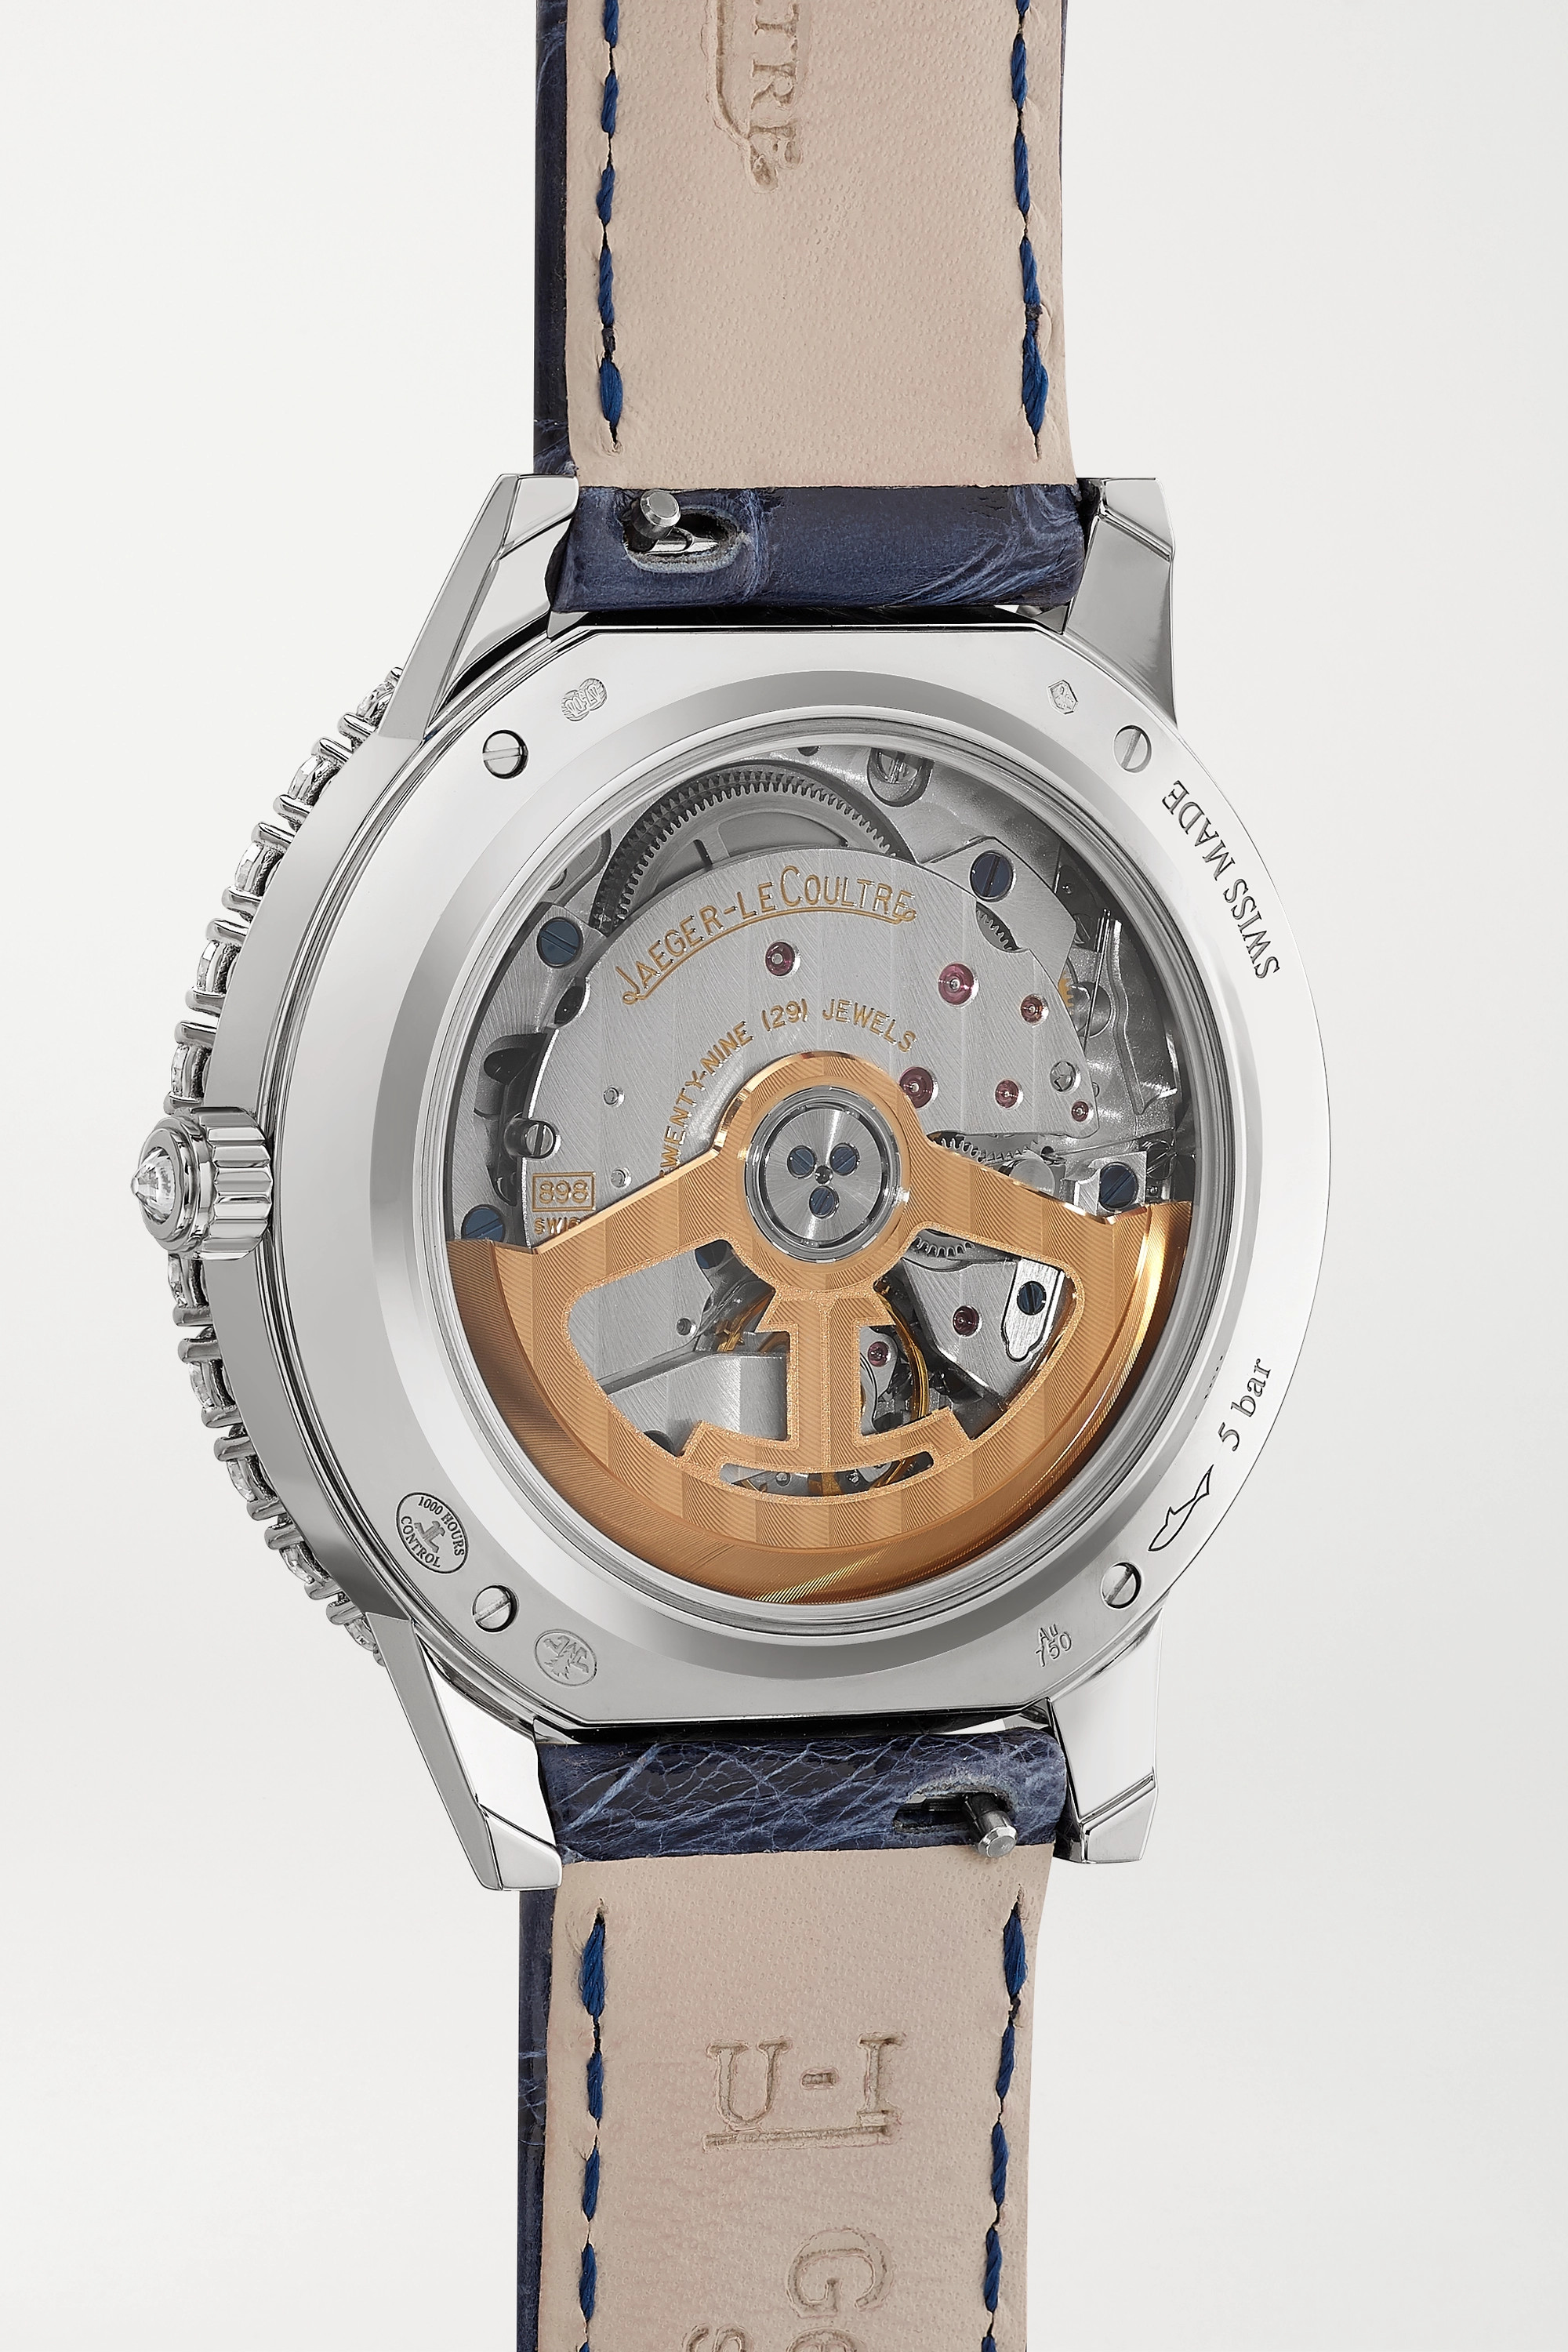 Jaeger-LeCoultre Rendez-Vous Night & Day Automatic 36mm 18-karat white gold, mother-of-pearl, diamond and alligator watch